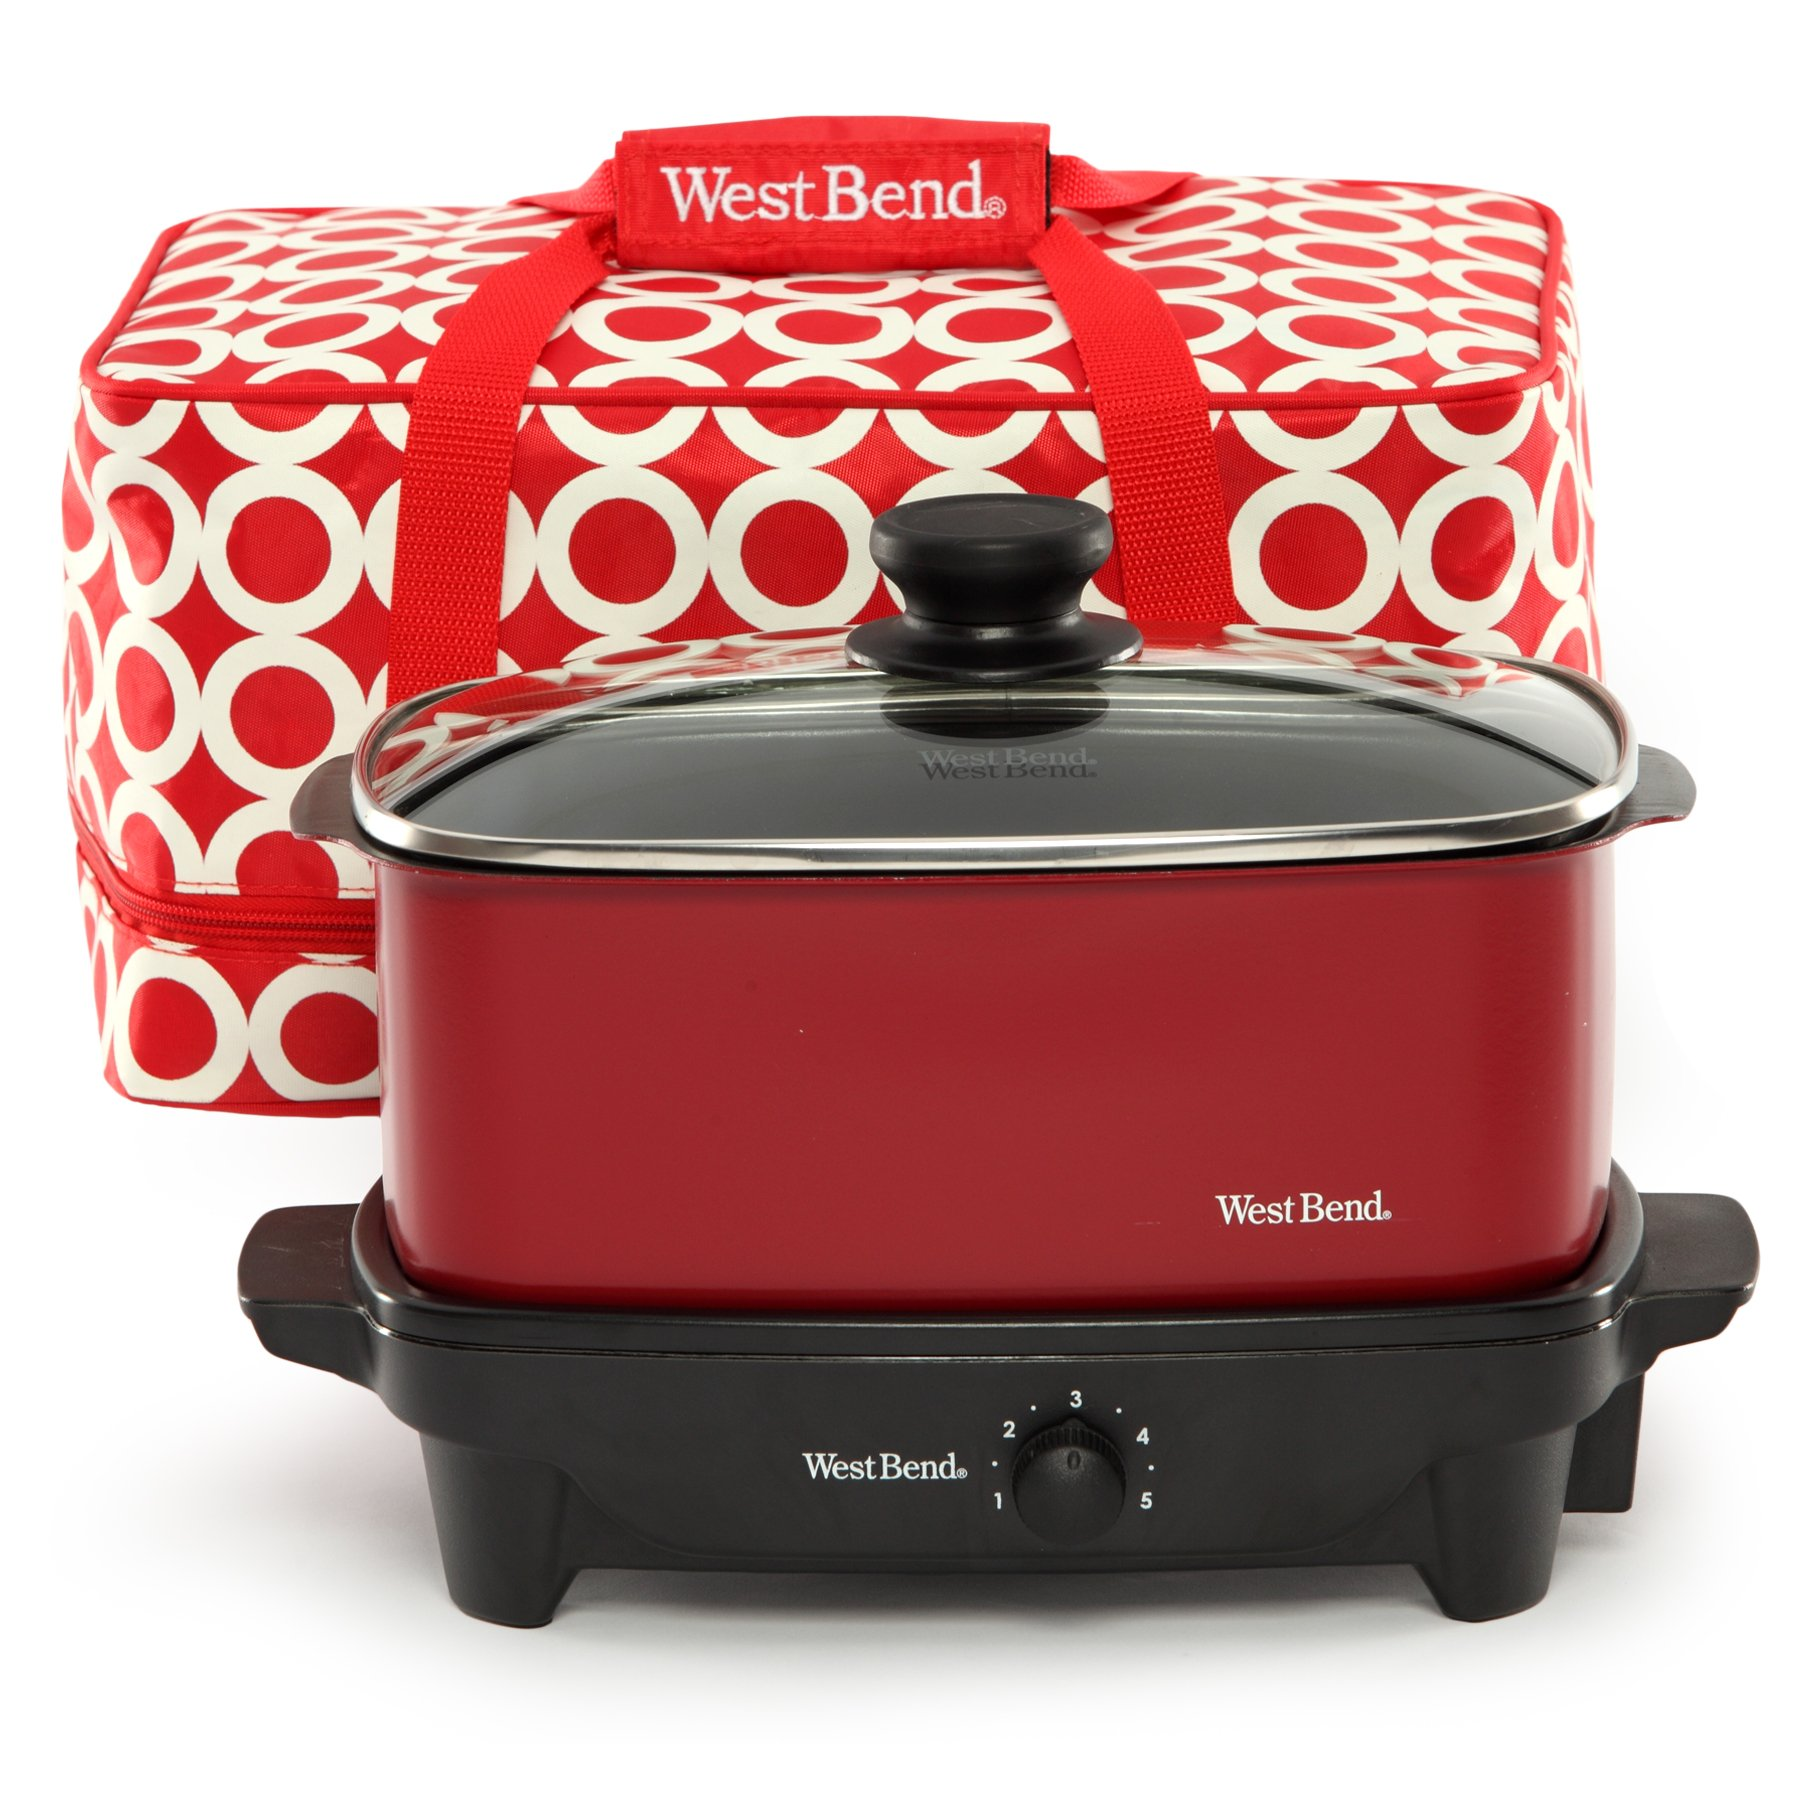 West Bend 84915R Versatility Slow Cooker with Insulated Tote and Transport Lid, 5-Quart, Red (Discontinued by Manufacturer)